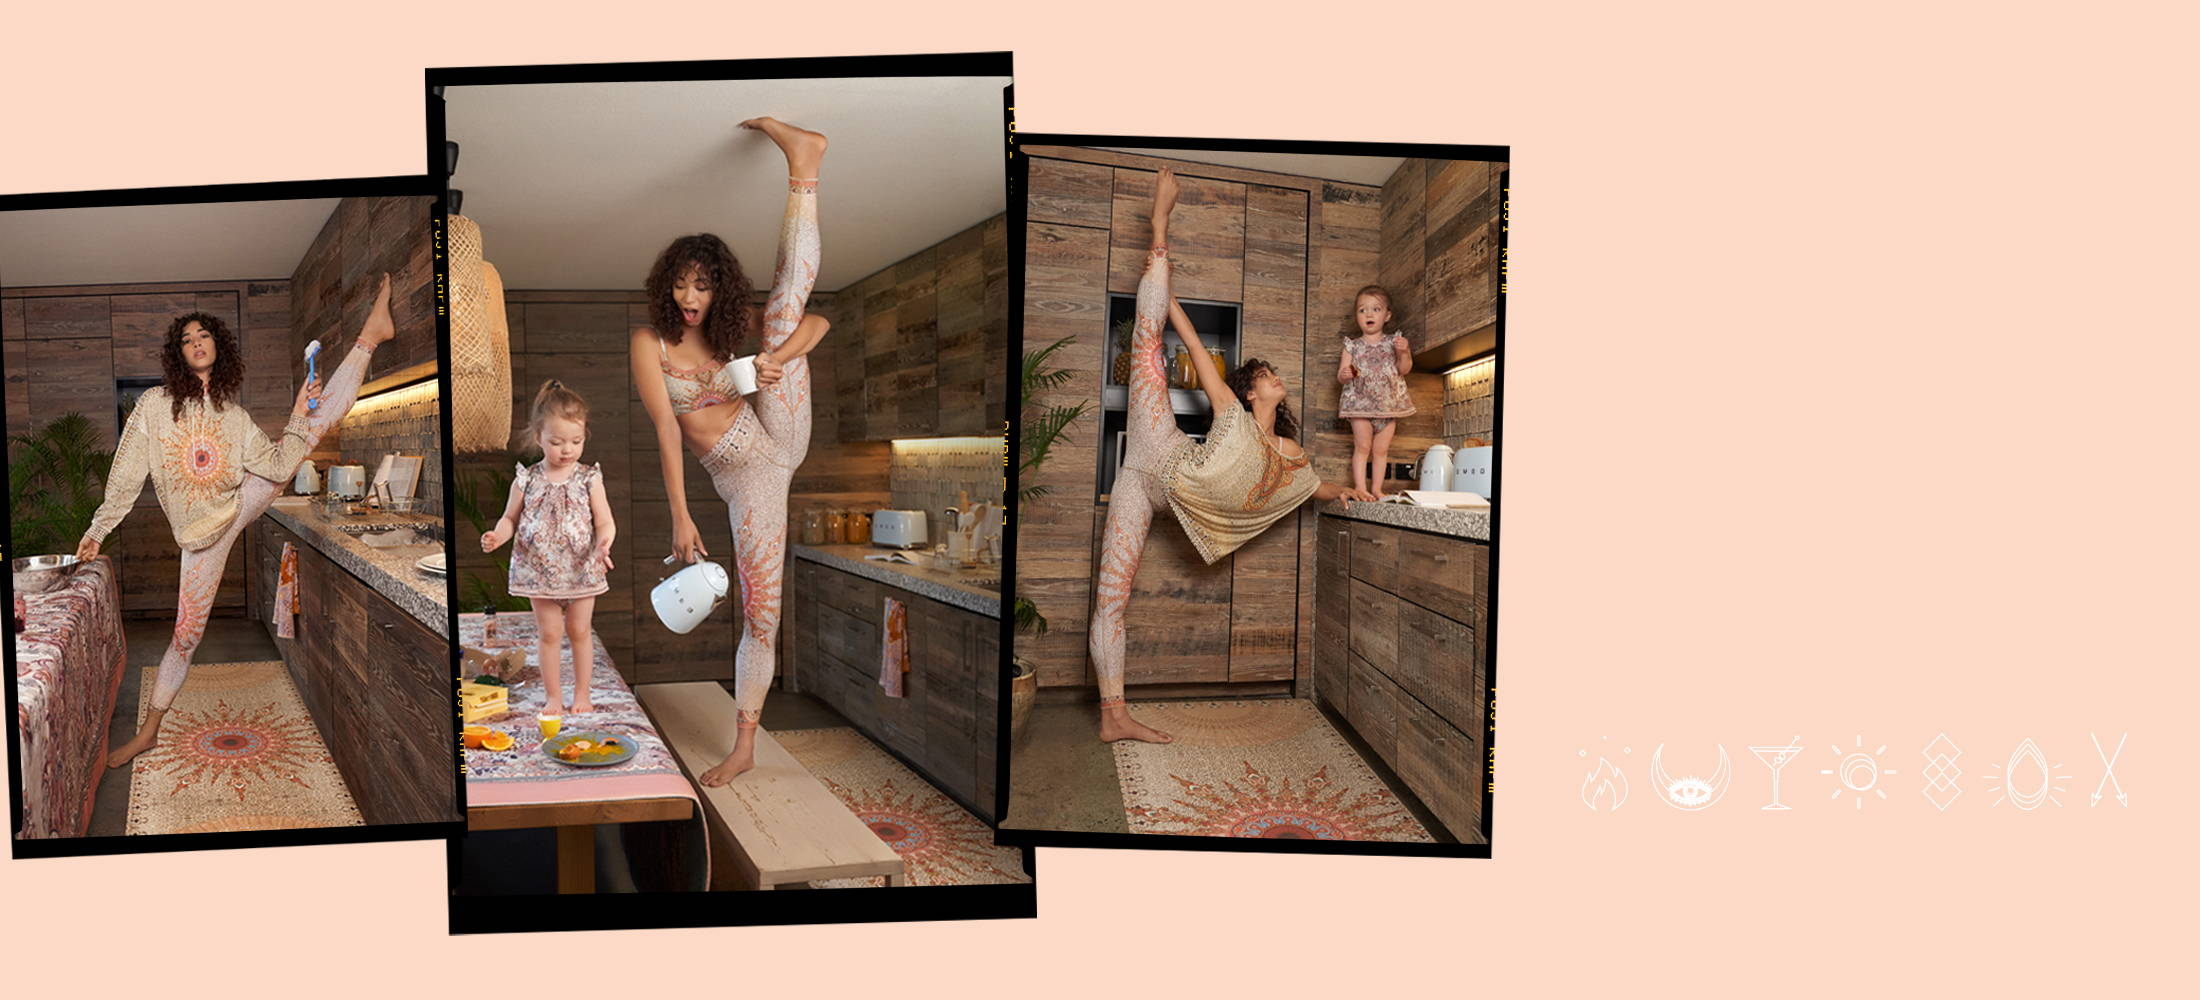 CAMILLA new yoga zenwear, yoga crop, tights, jumper, tshirt, beige, orange, pink bohemian print. Model and Luna in kitchen.